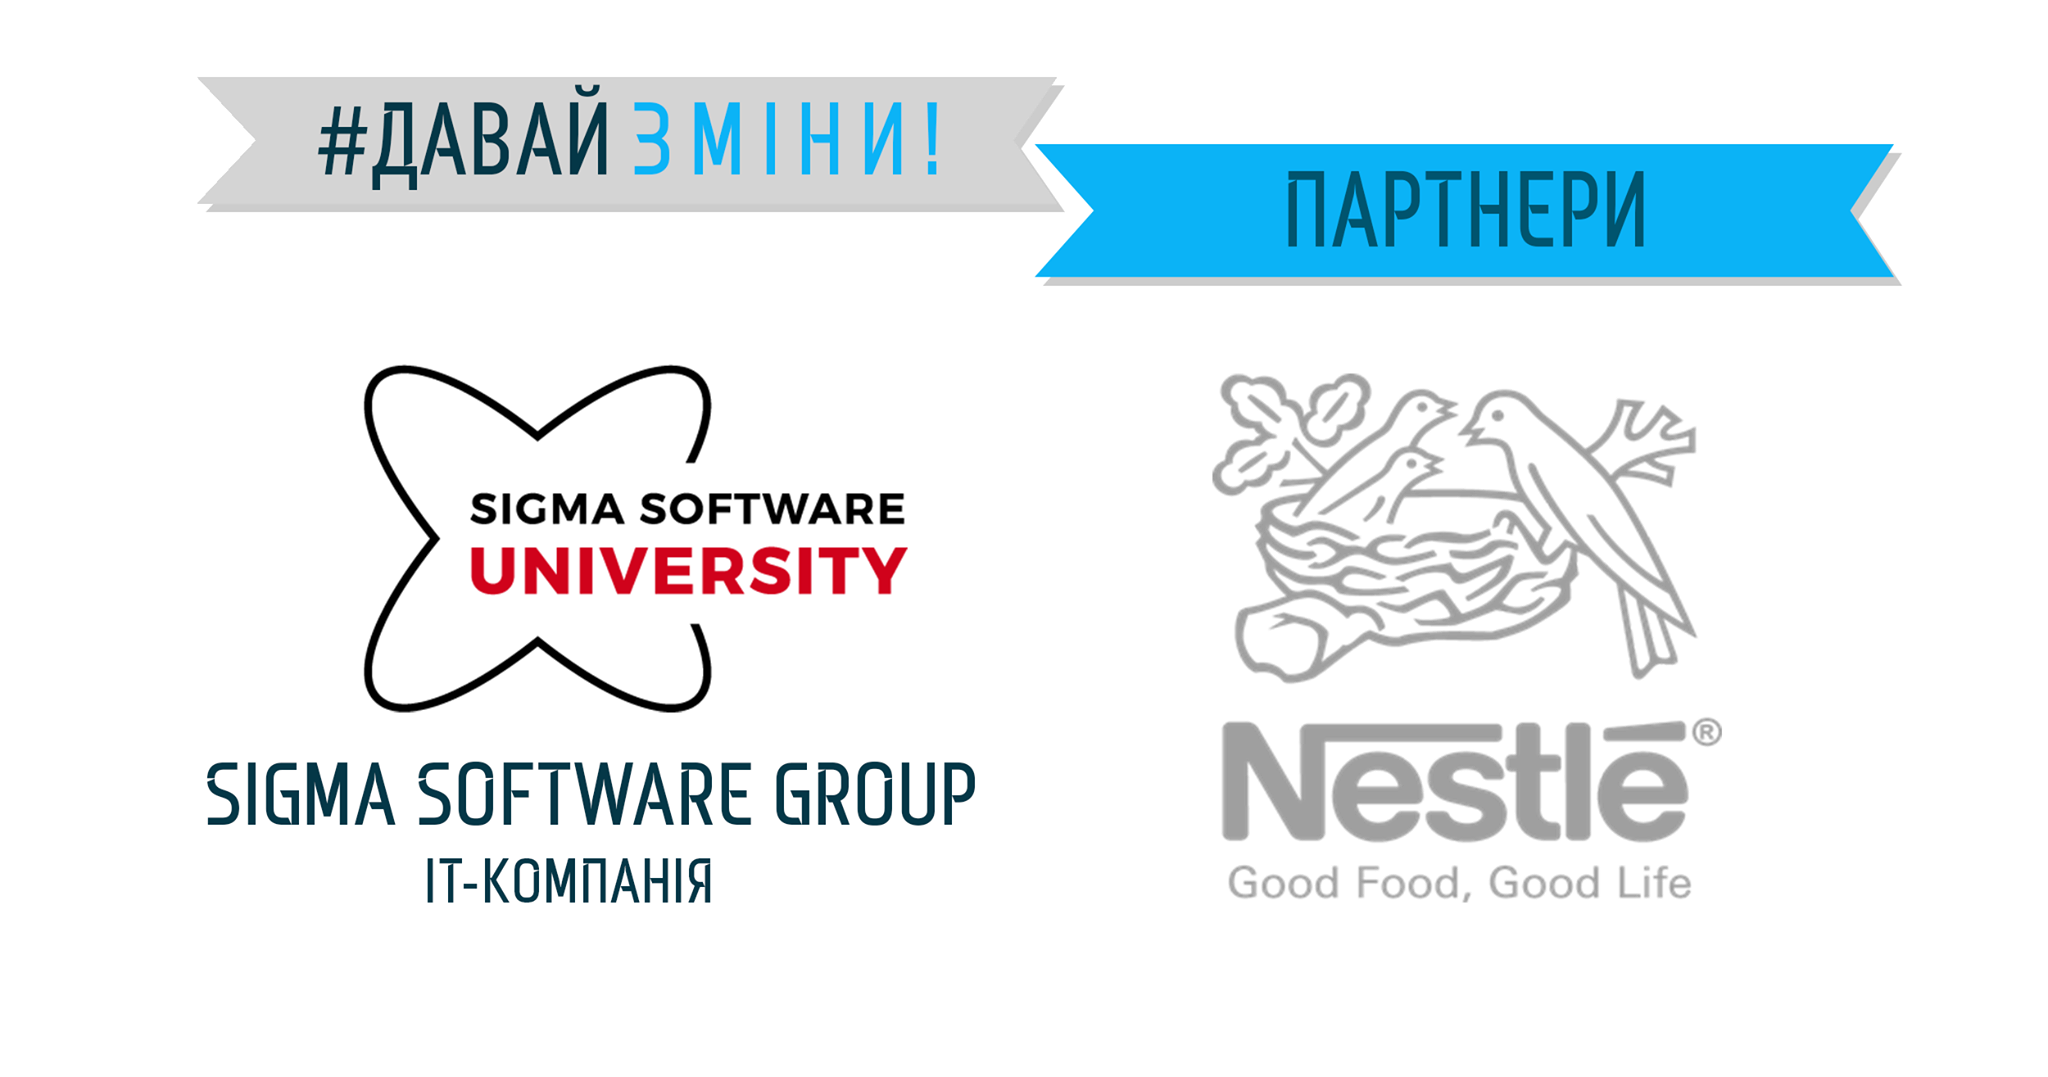 Партнери_Nestle_SigmaSoftware